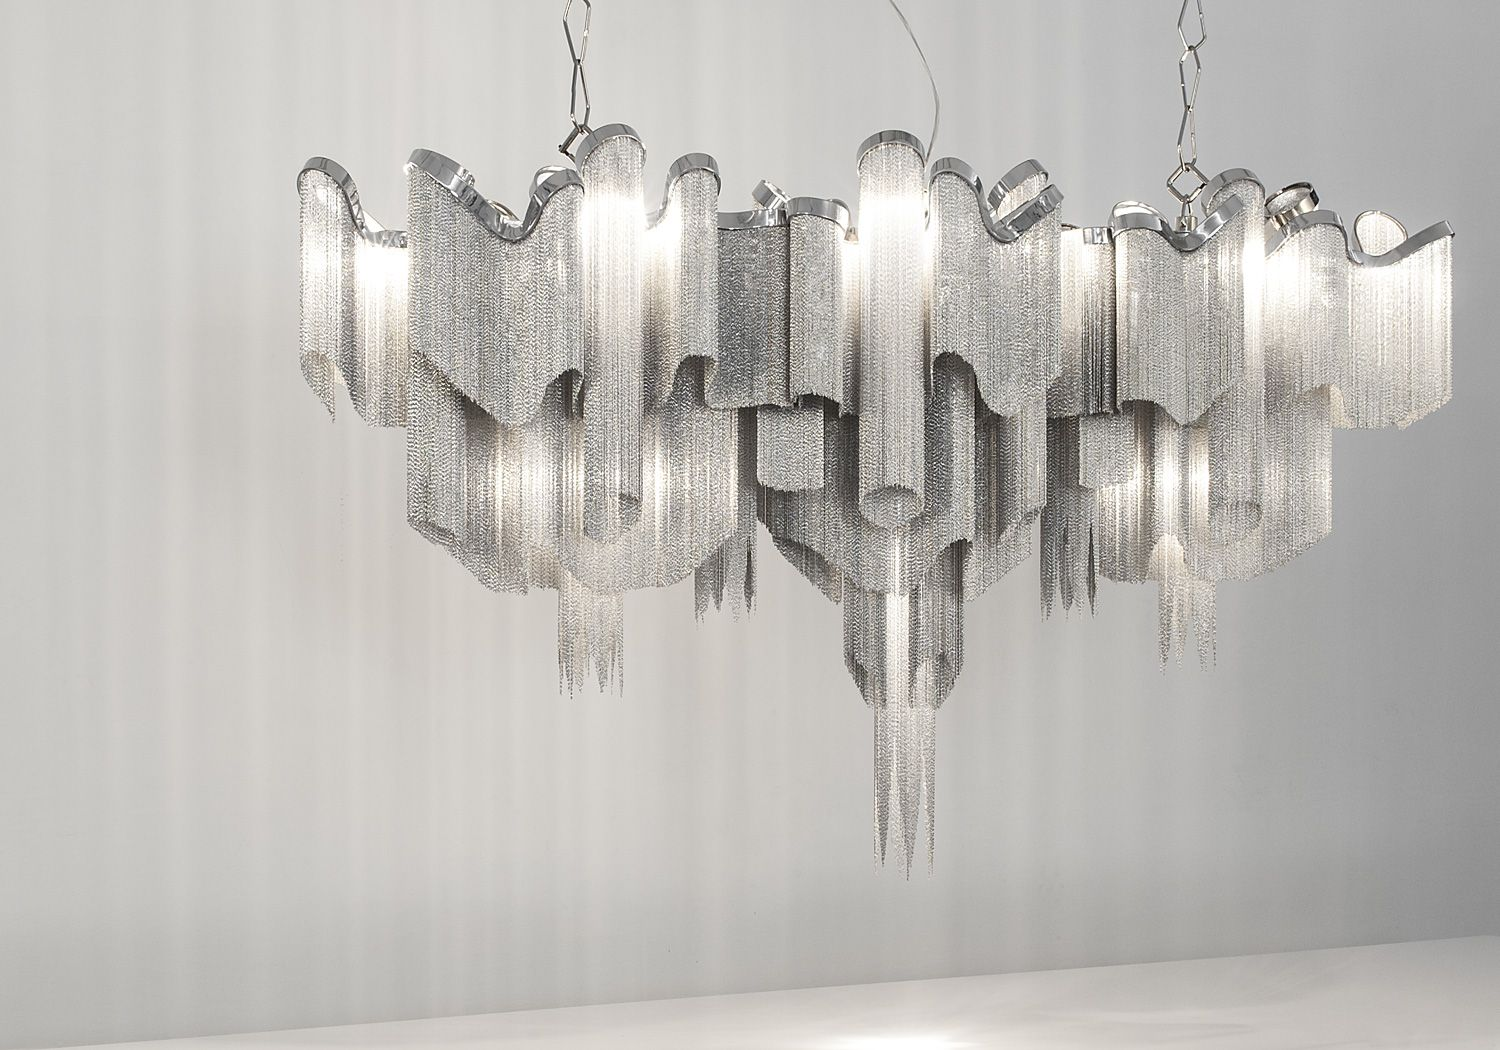 Terzani - Stream Iridiscent Light  TOP 10 MOST BEAUTIFUL AND TRENDY SUSPENSION LAMPS OF 2014  #decorationlovers, #Design, #toplighting #ARCHITECURE #CHANDELIERBEST #CHANDELIERSOF2014 #BESTSUSPENTIONLAMPSOF2014   Follow: http://decorationlovers.com/ https://www.facebook.com/decorationlovers?fref=ts